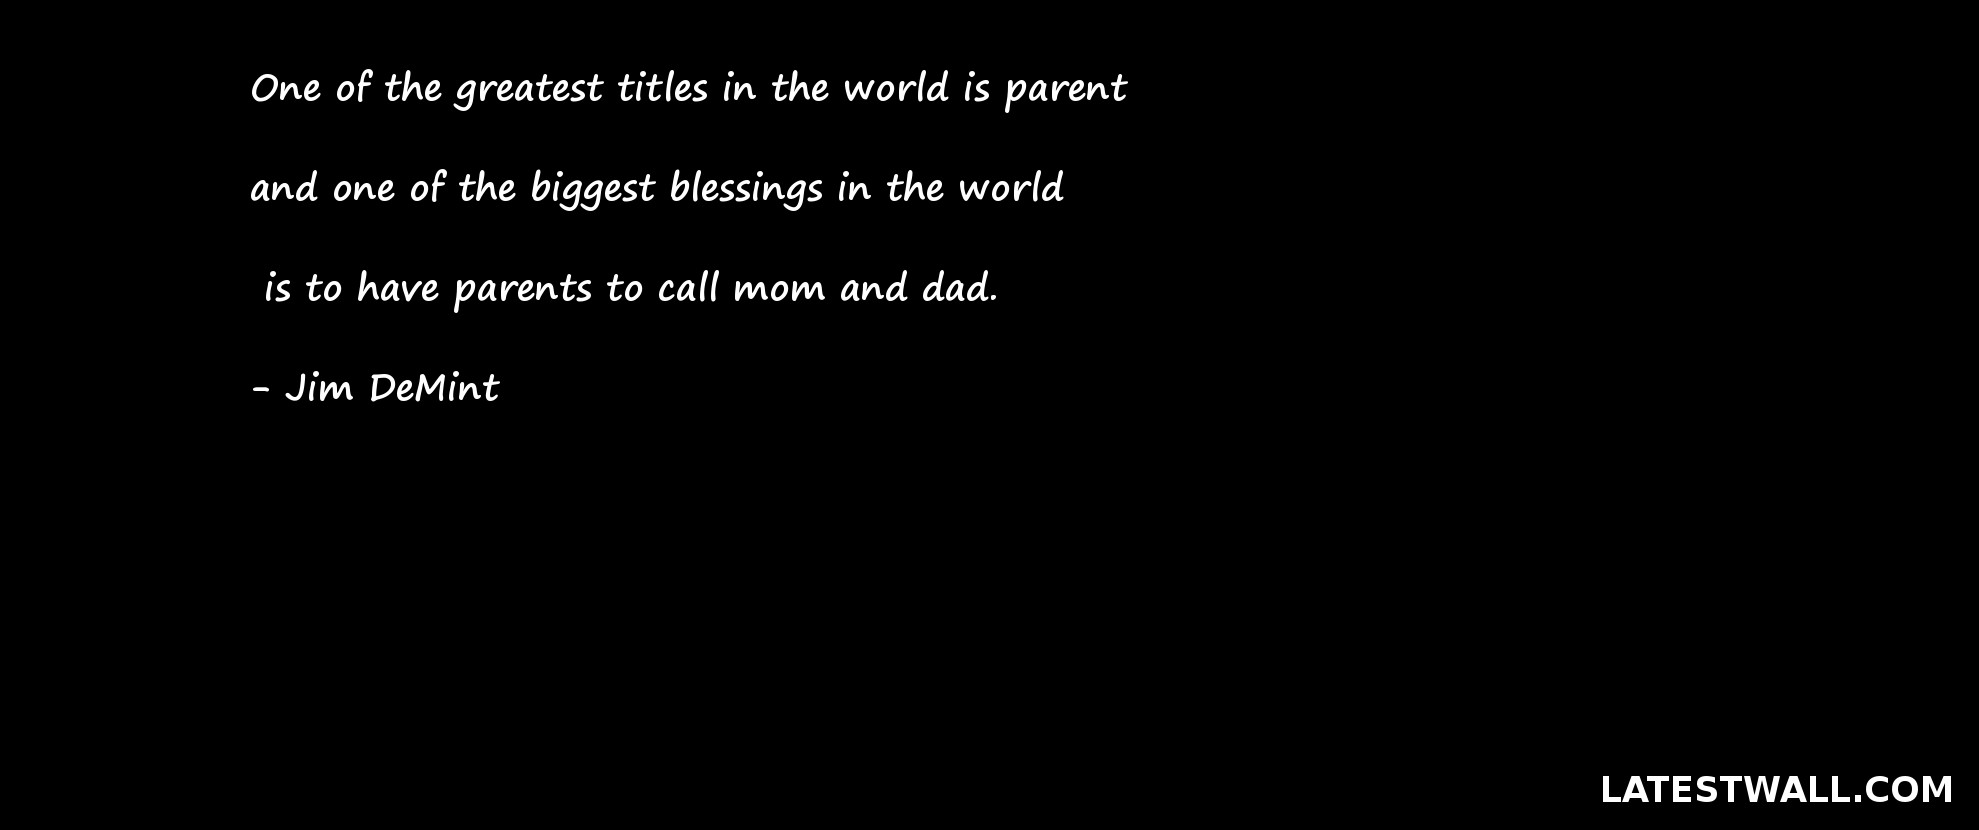 One of the greatest titles in the world is parent